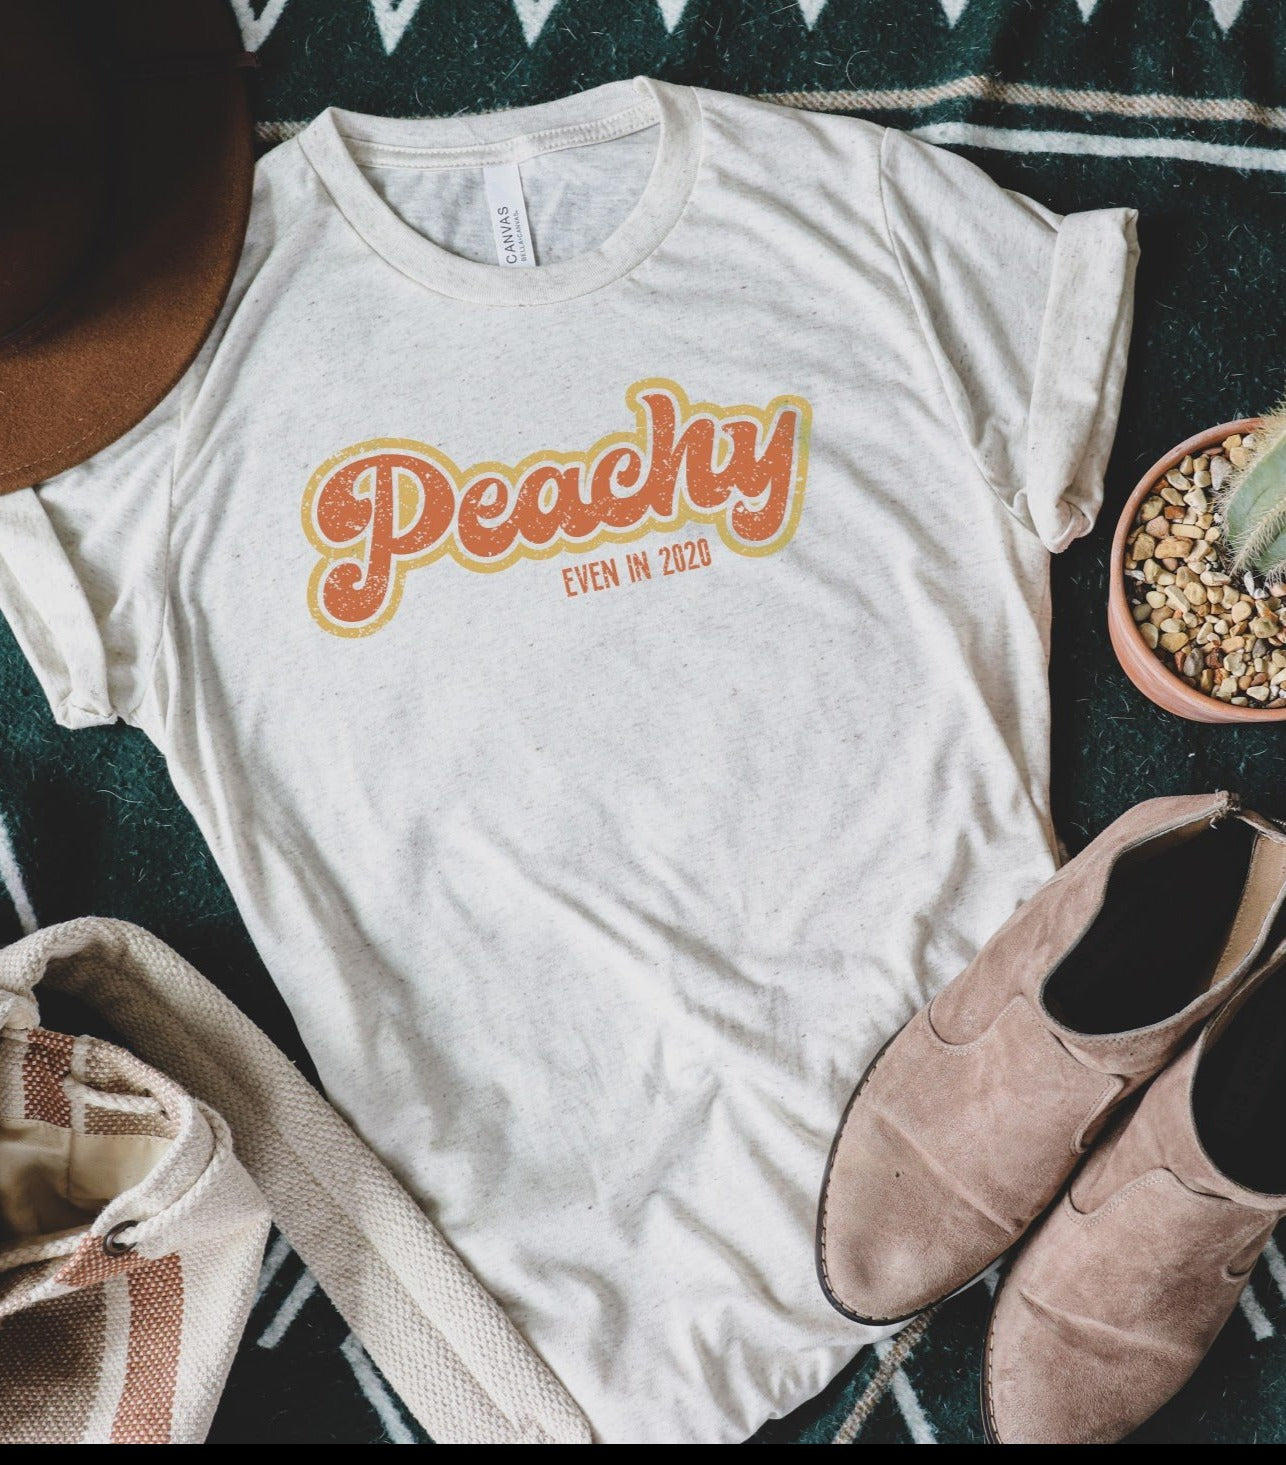 Peachy Even in 2020 Tee